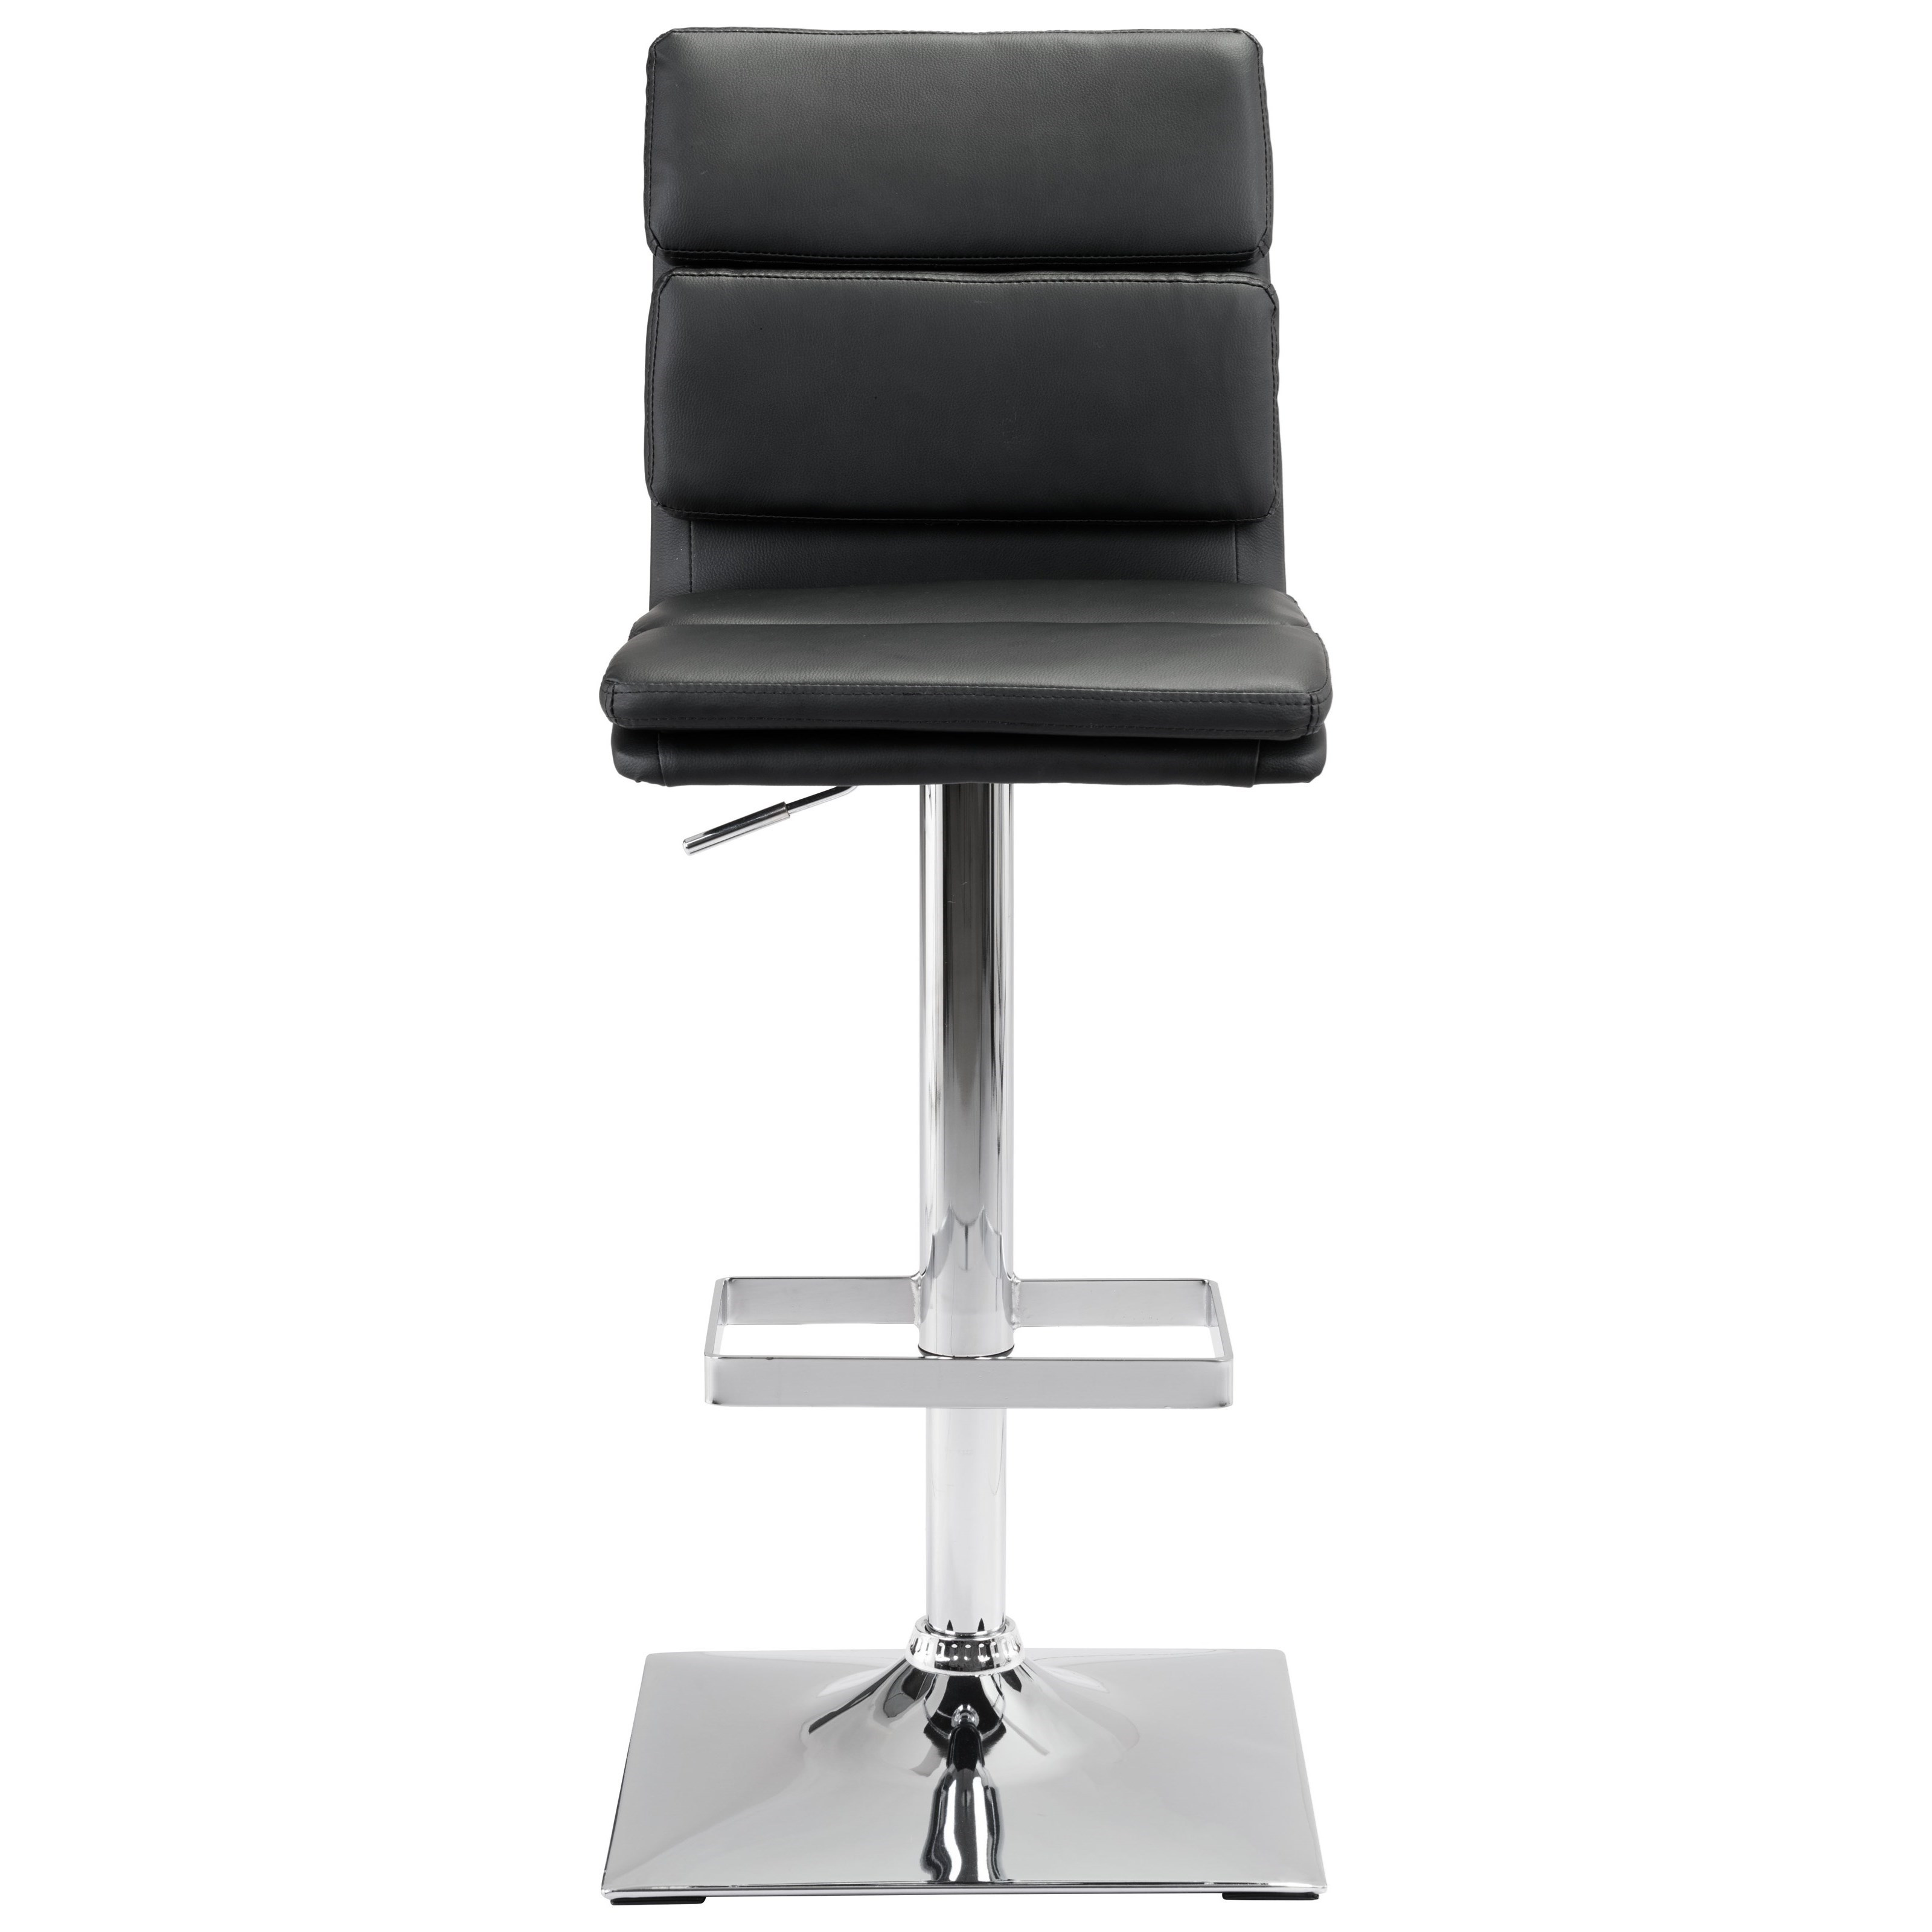 Use Bar Chair by Zuo at Nassau Furniture and Mattress